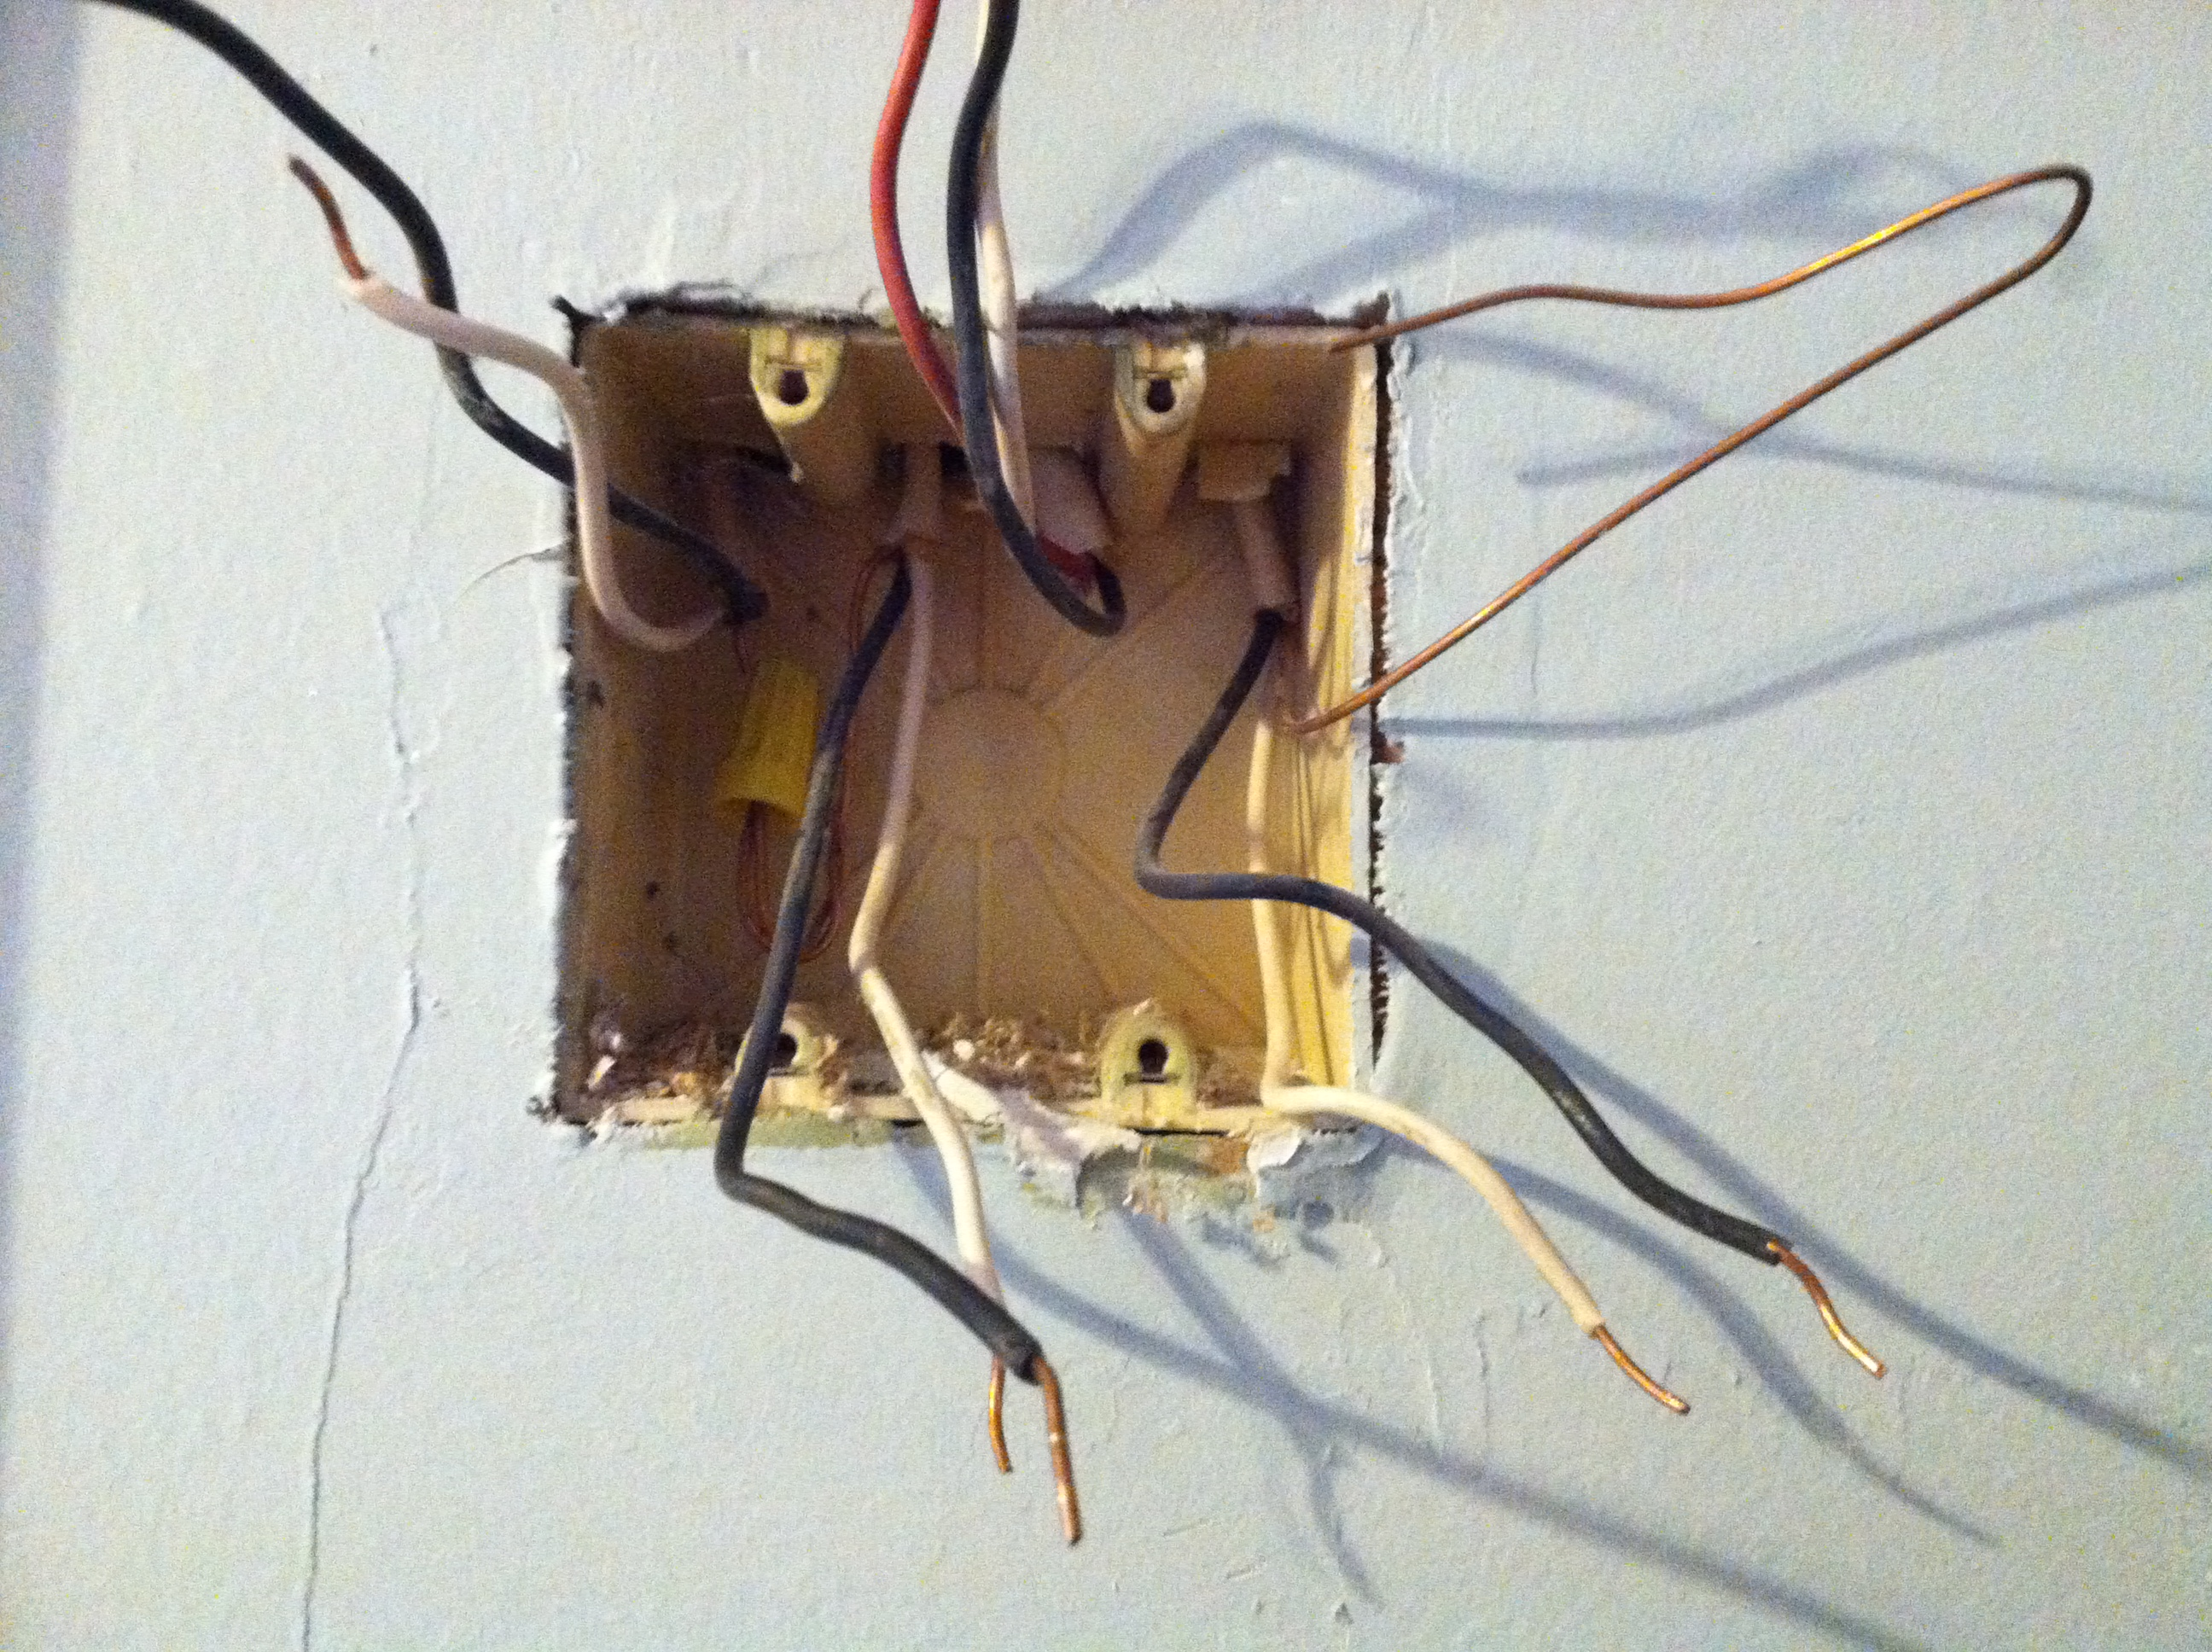 Im Wiring A 3 Way Switch In My Older House Previously The Light How Switches Work Would Only When Both Were On Position Prompting Me To Investigate